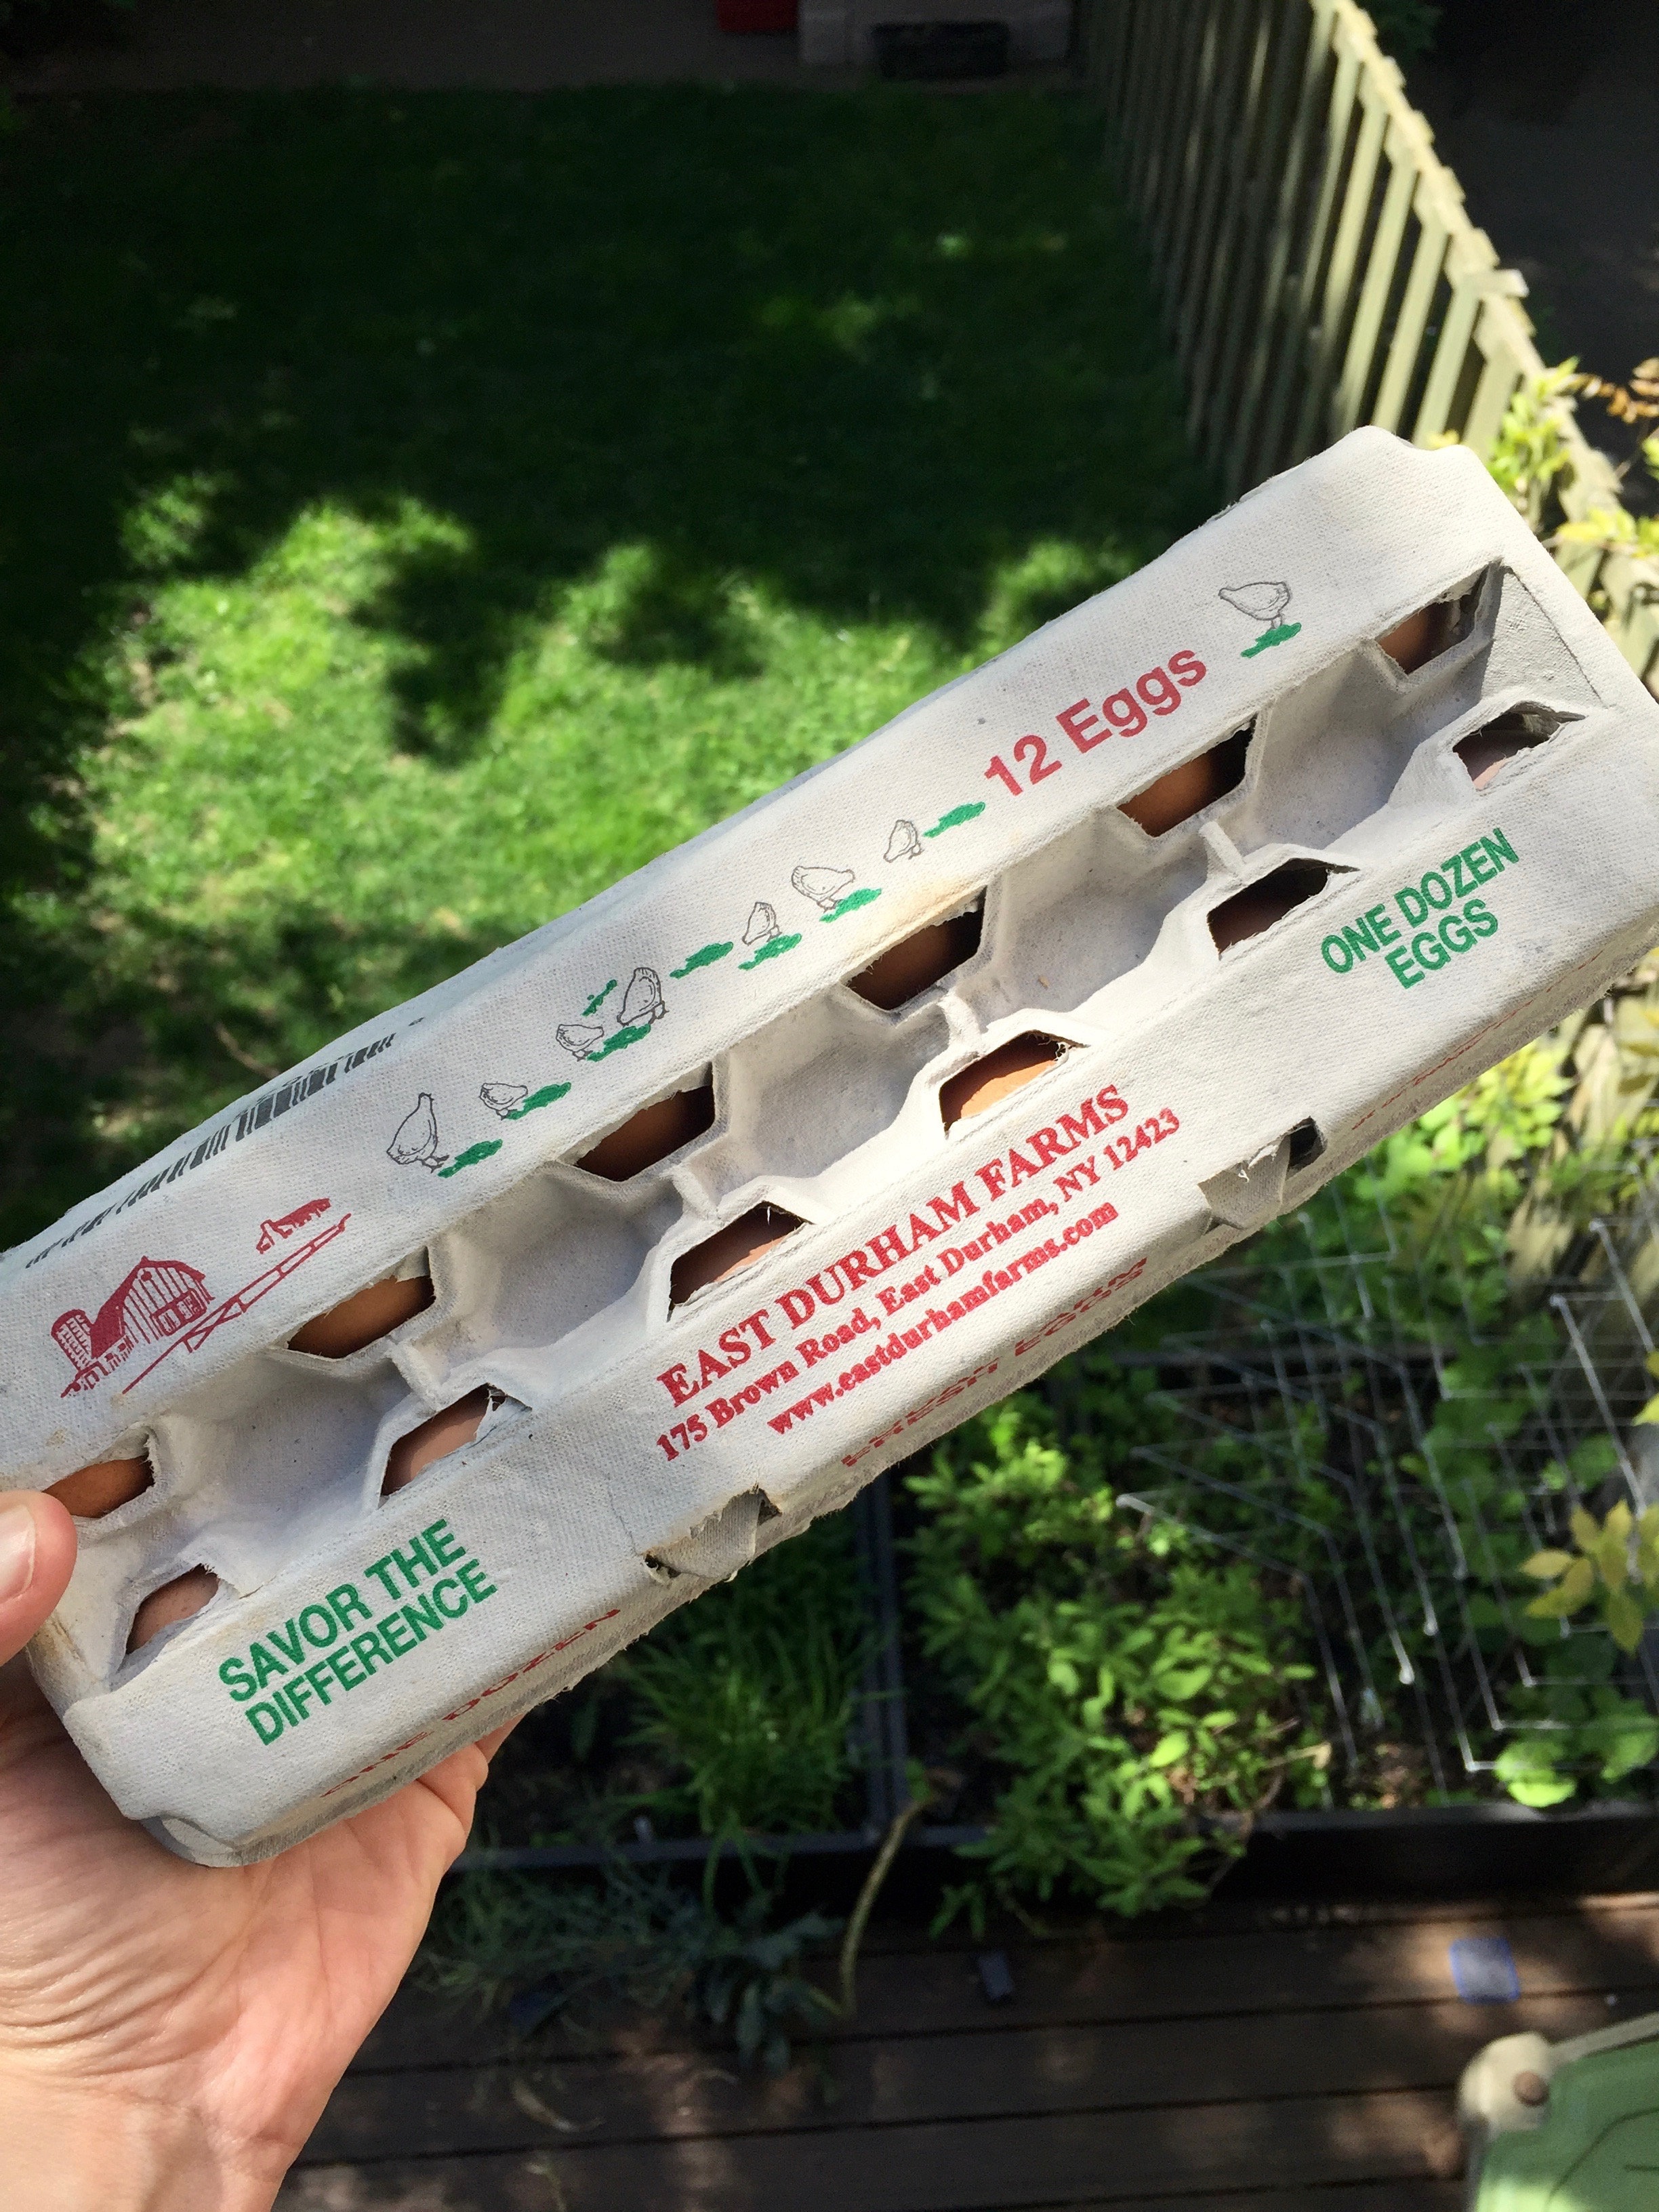 Eggs from East Durham Farms